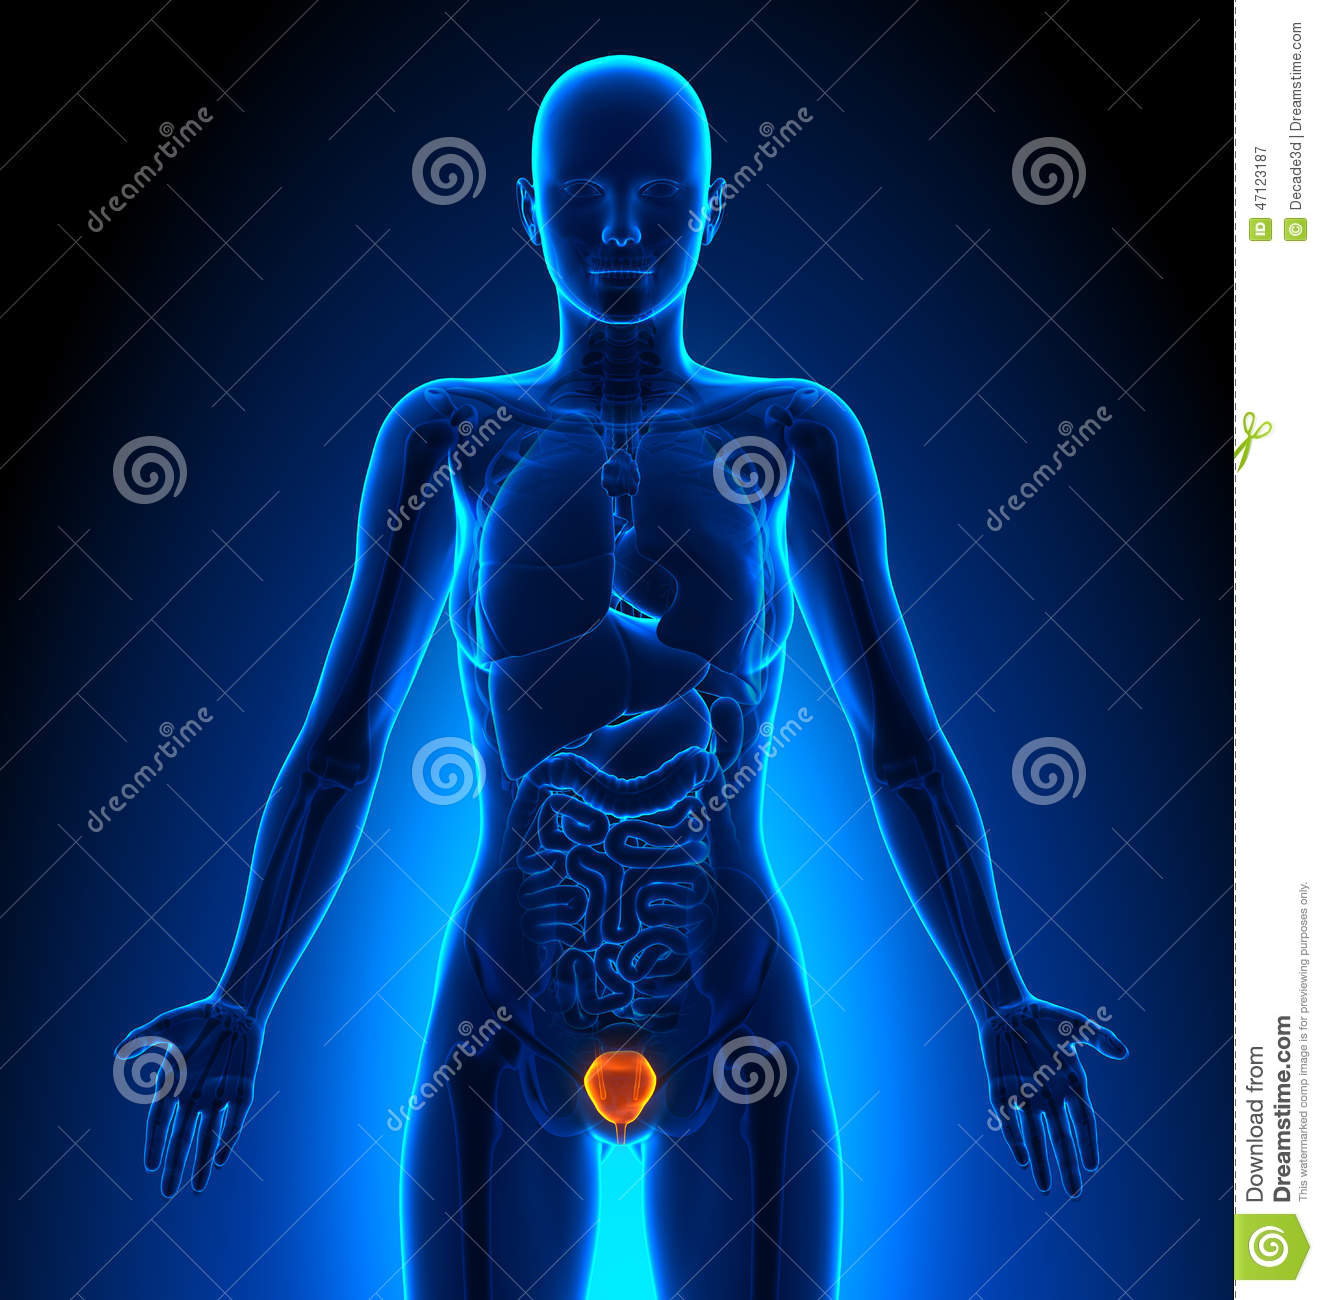 Bladder Female Organs Human Anatomy Stock Illustration